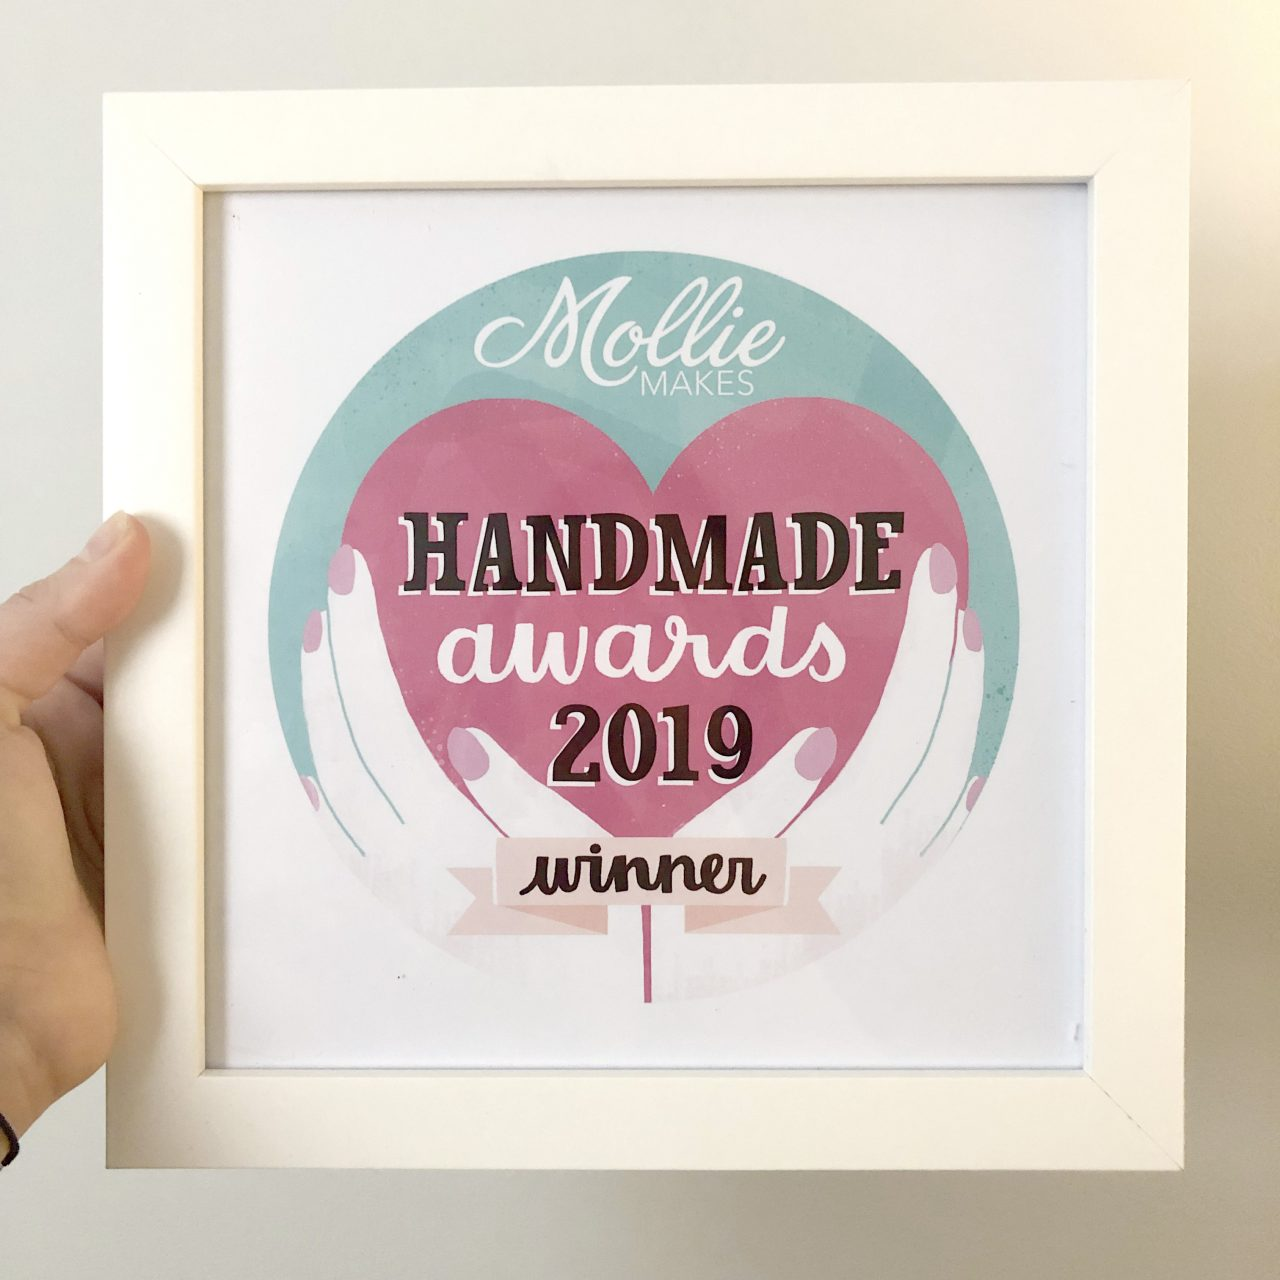 Mollie Makes Handmade Awards Winner 2019